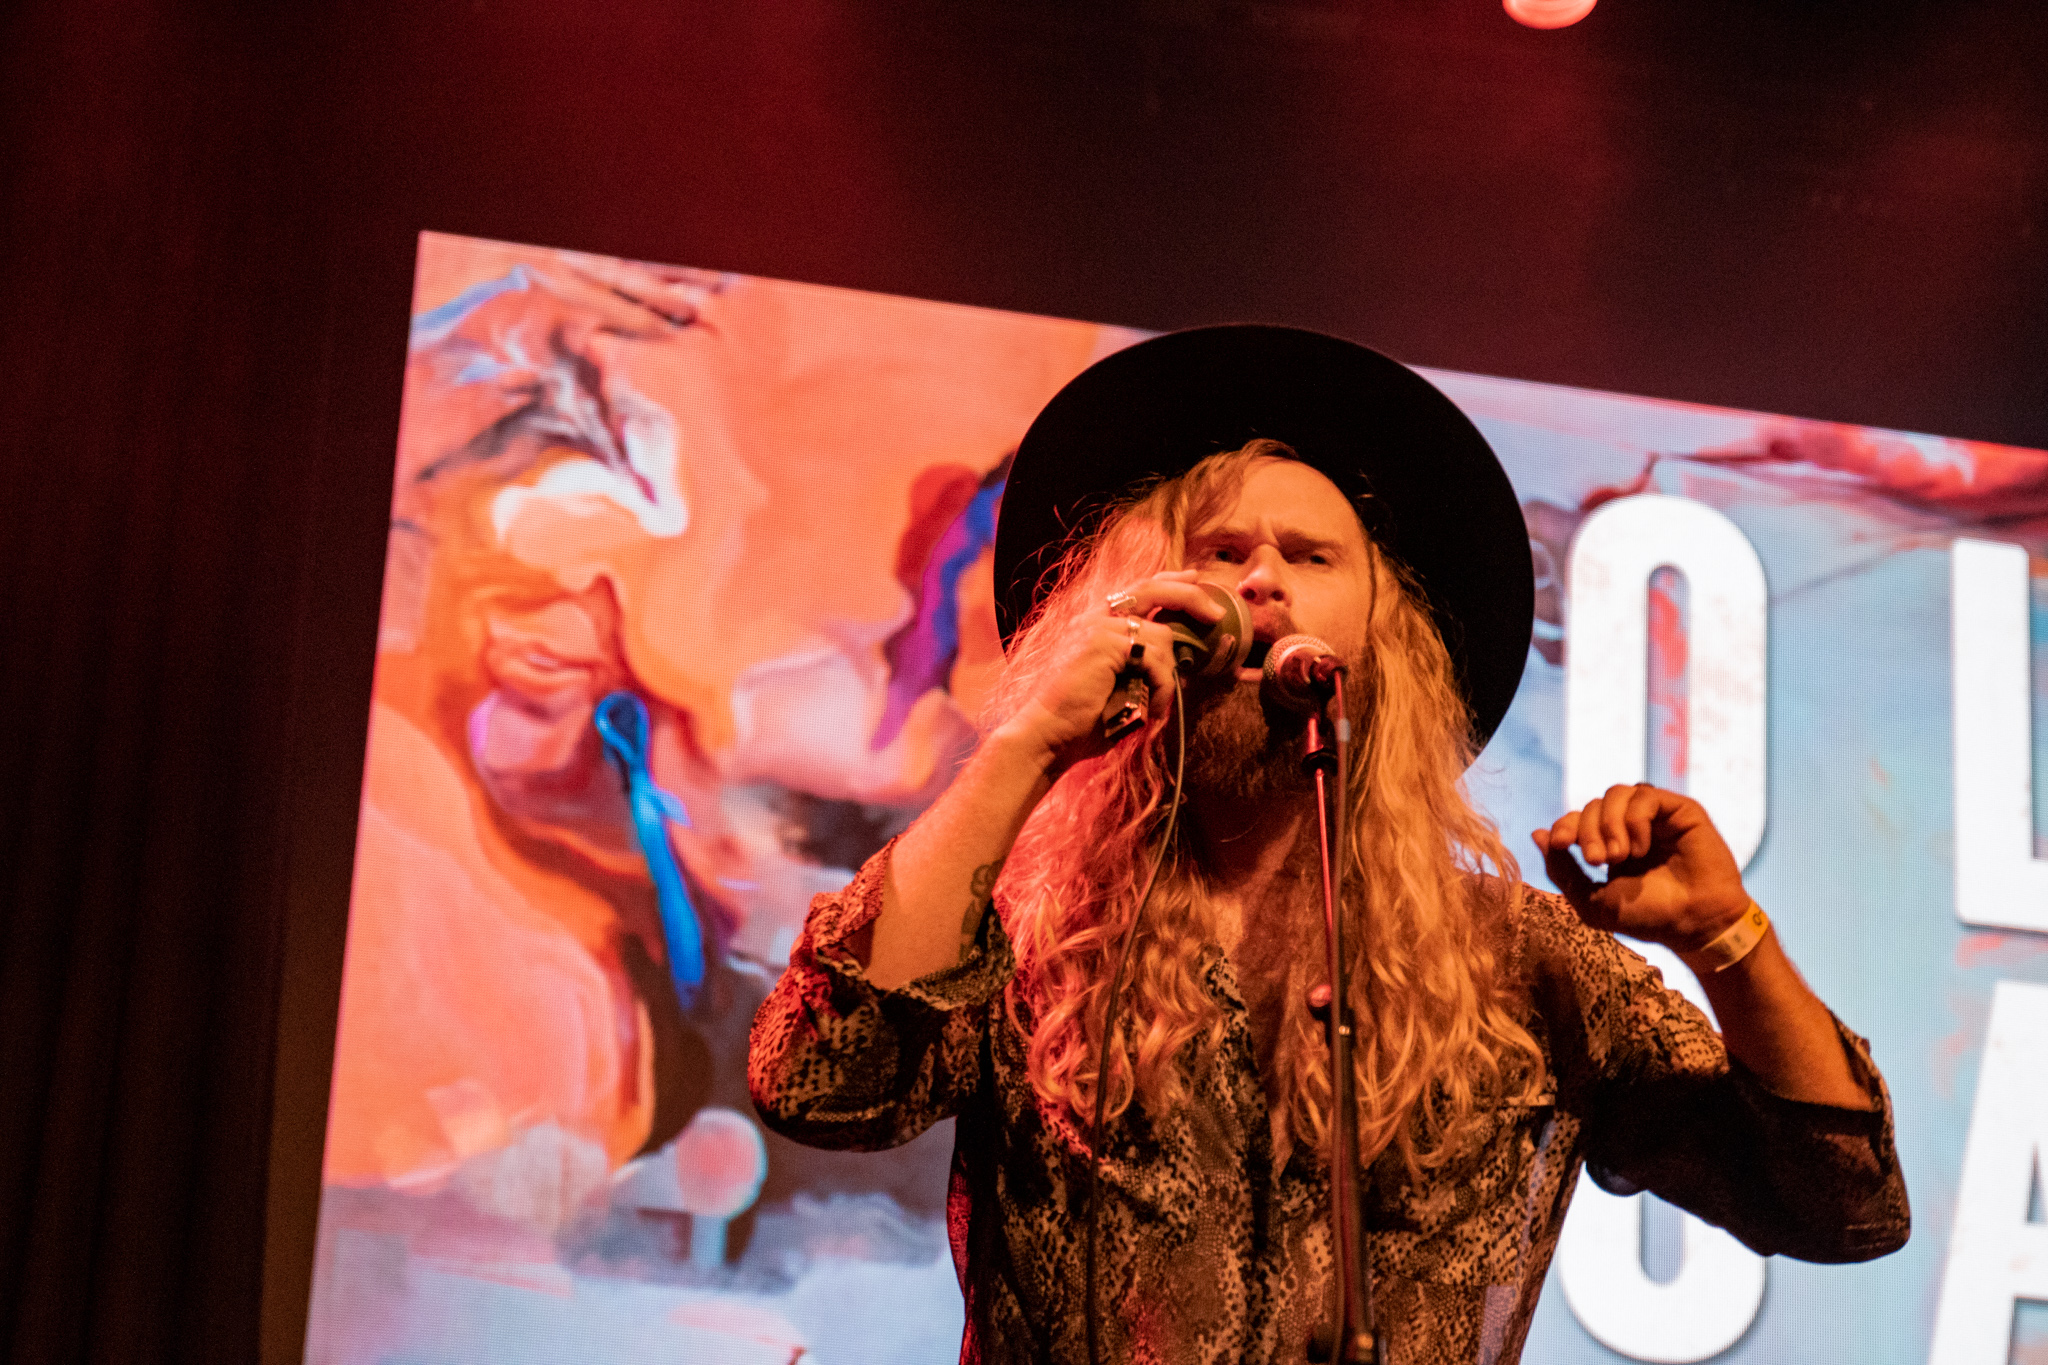 FolfRoadShow-QFactory-Amsterdam_NL-20191114-SylviaWijnands-013